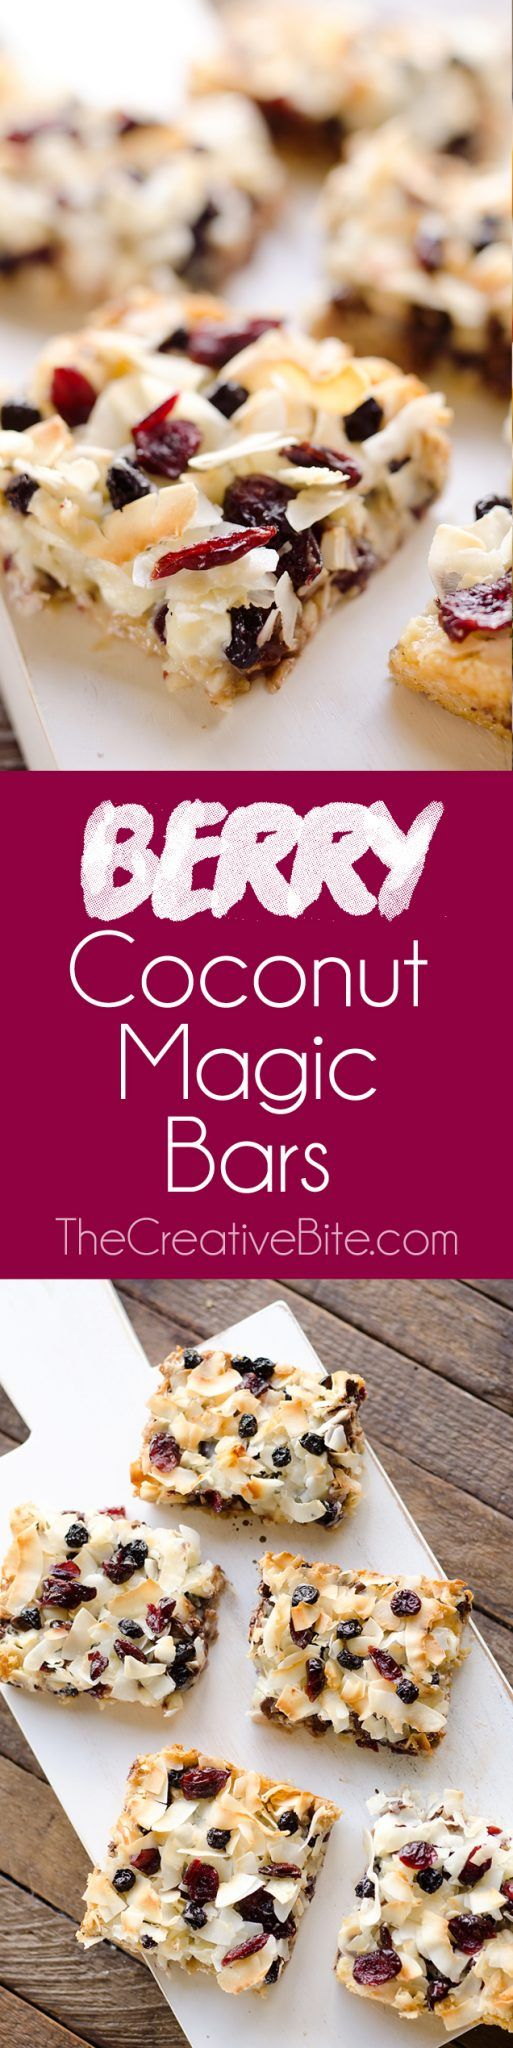 Berry Coconut Magic Bars are amazingly easy to whip together and have the great flavors of chocolate and dried berries for a fun twist on a classic dessert. #MagicBars #Dessert #Berry